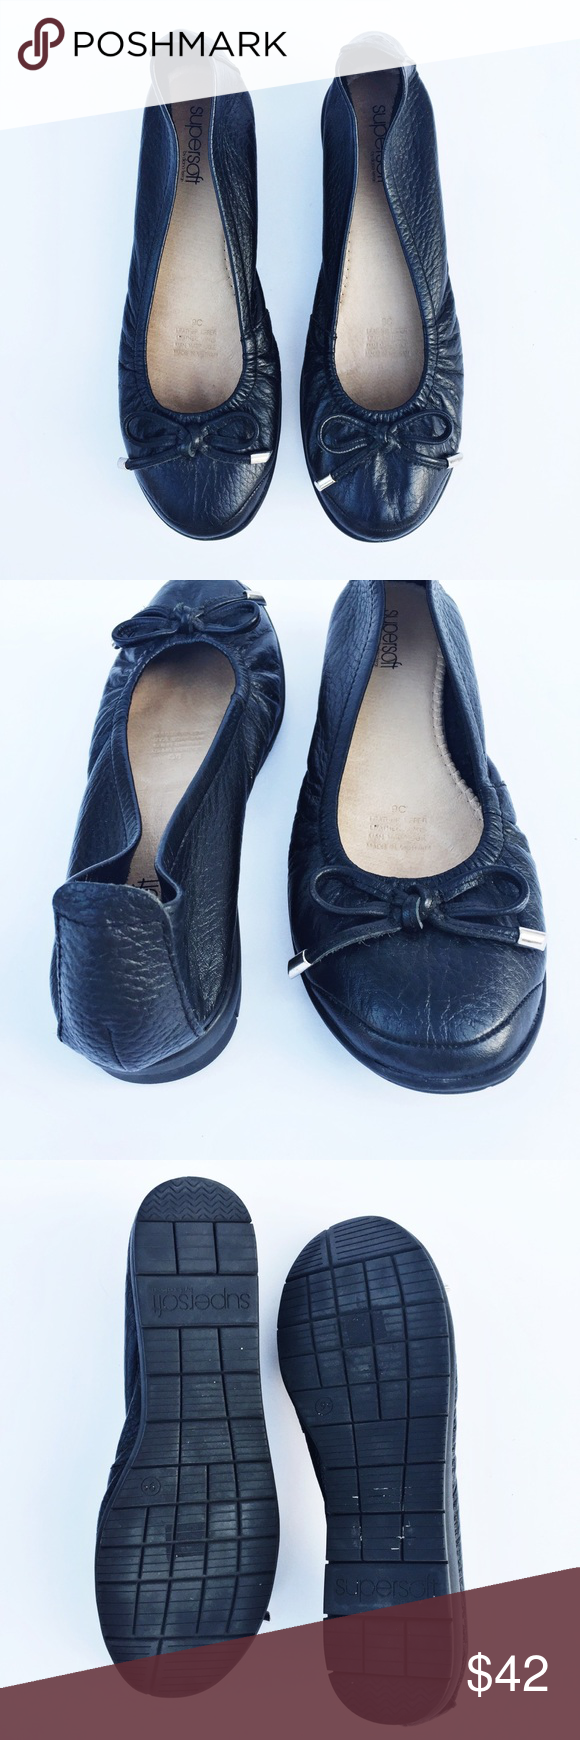 Leather flats, Black leather